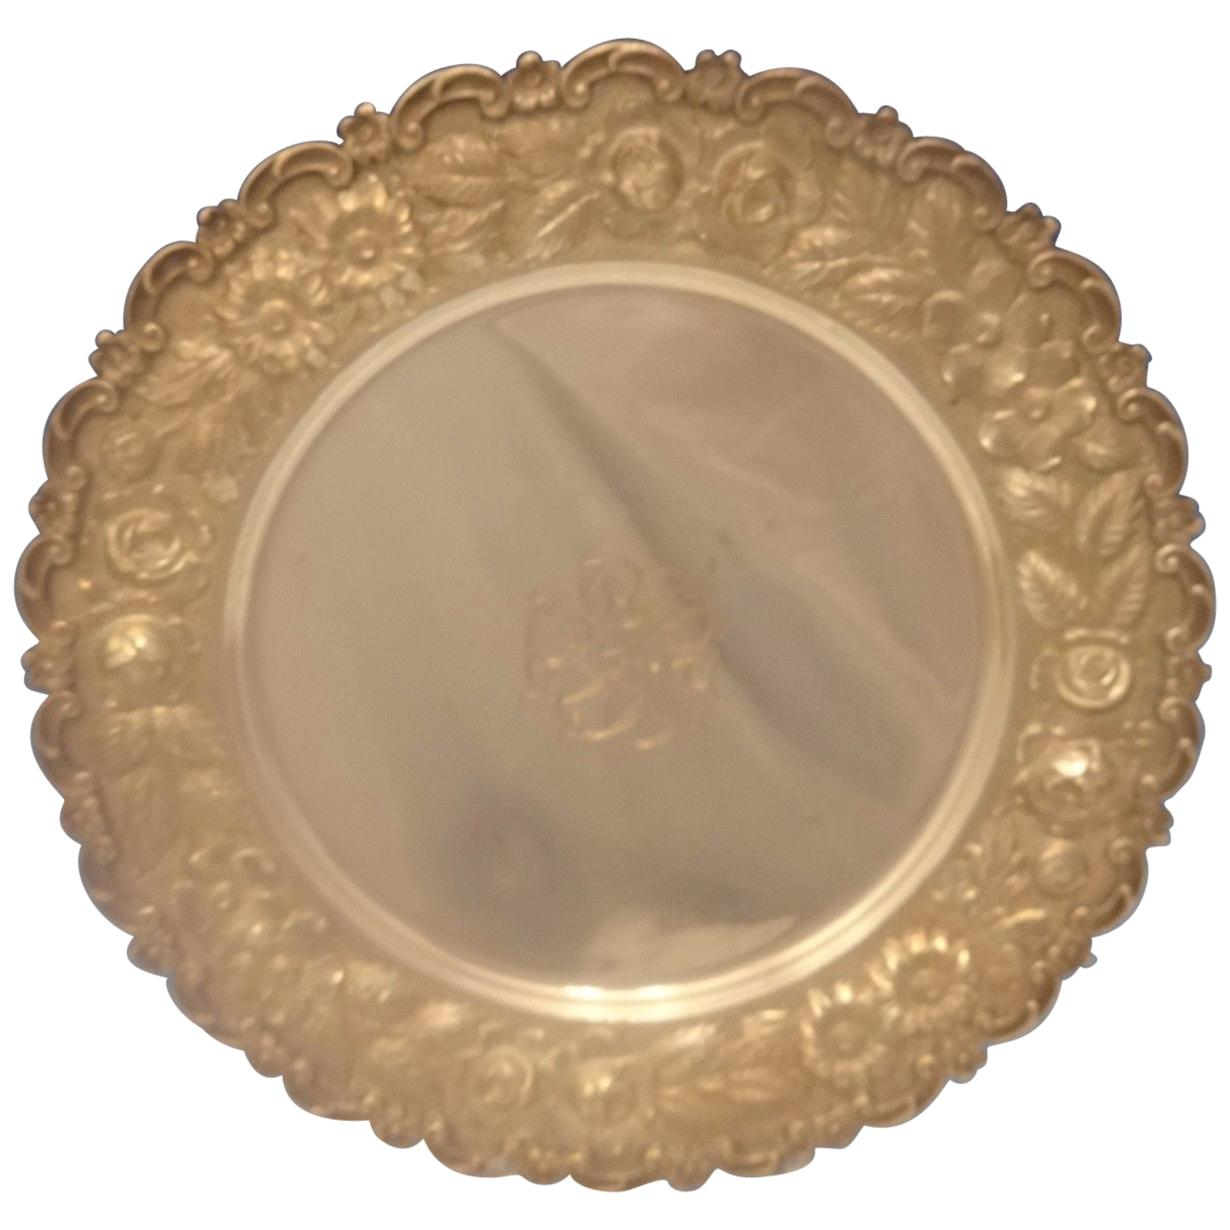 Baltimore Beauty by Baltimore Silversmiths Sterling Silver Dessert Plate